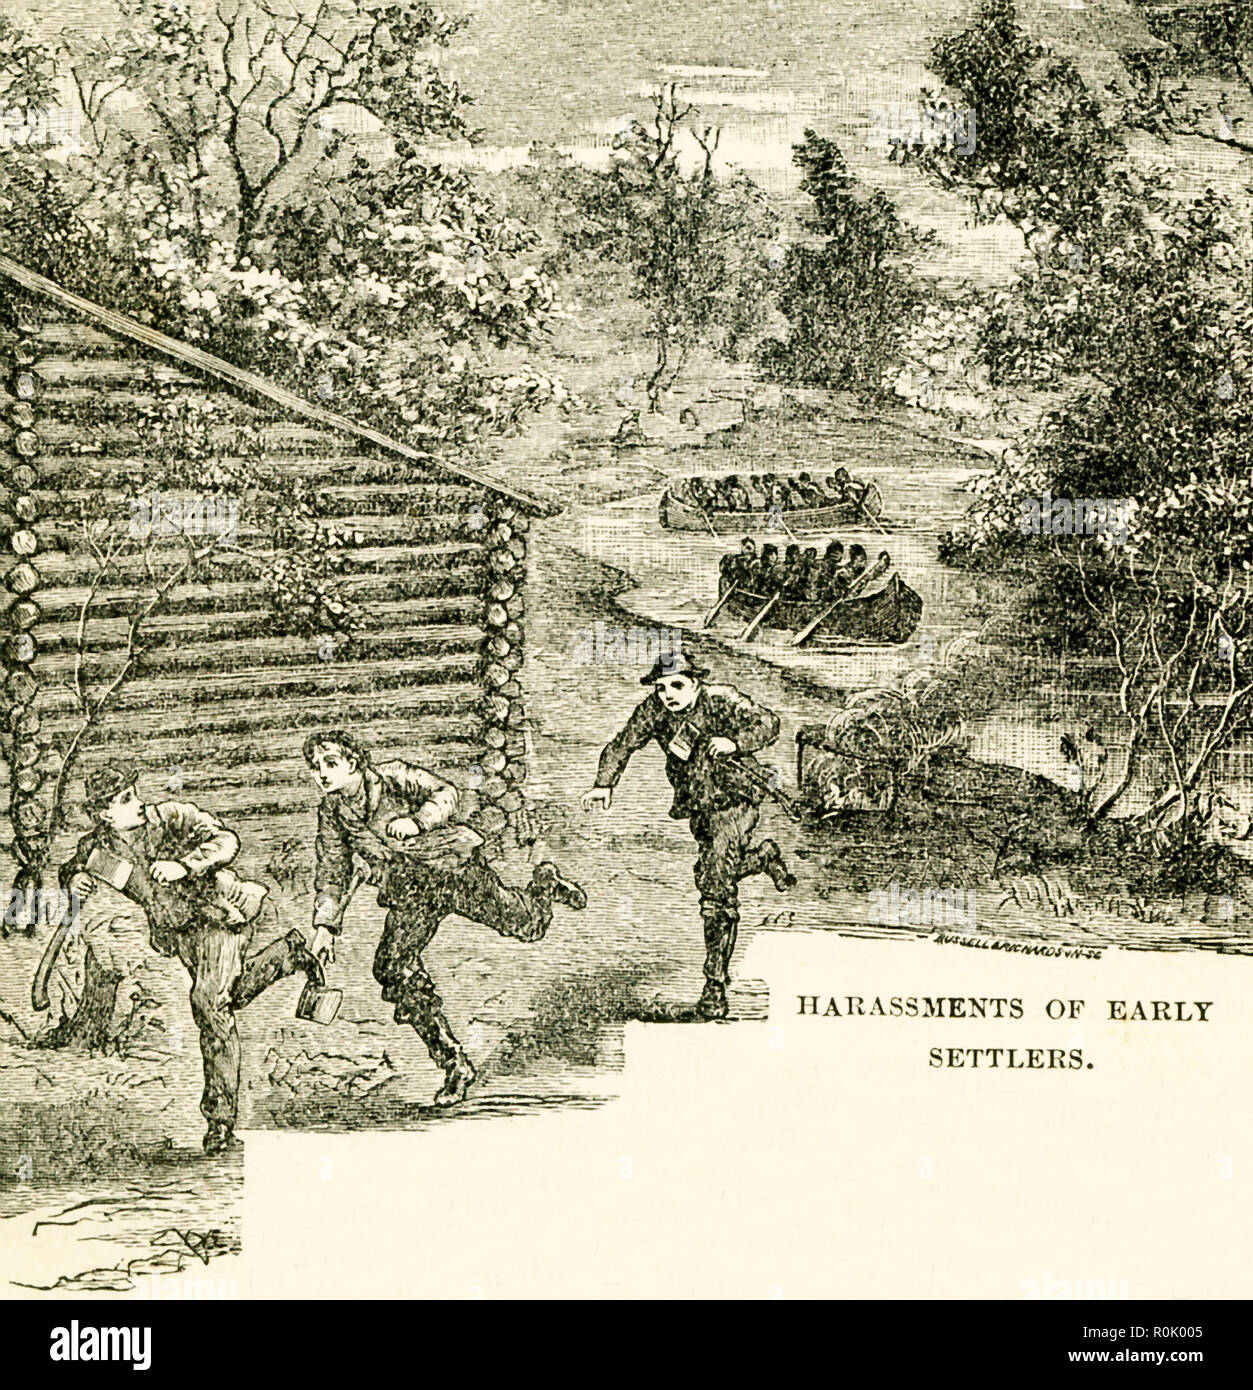 The Caption reads: Harrassment of Early Settlers  It details